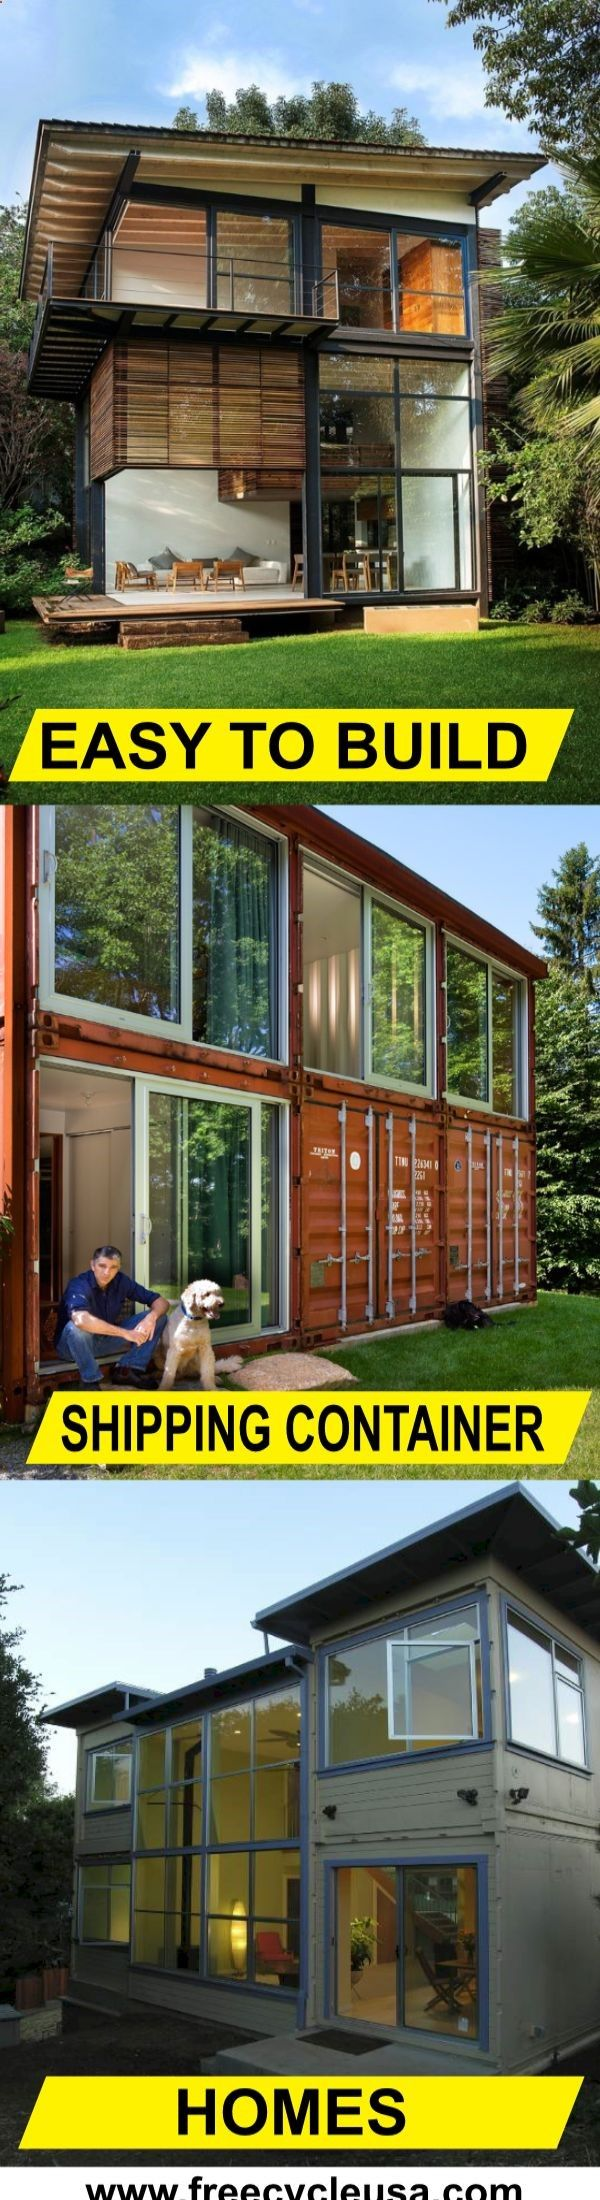 container house lean how to build a shipping container home with the best plans period who else wants simple stepbystep plans to design and build a